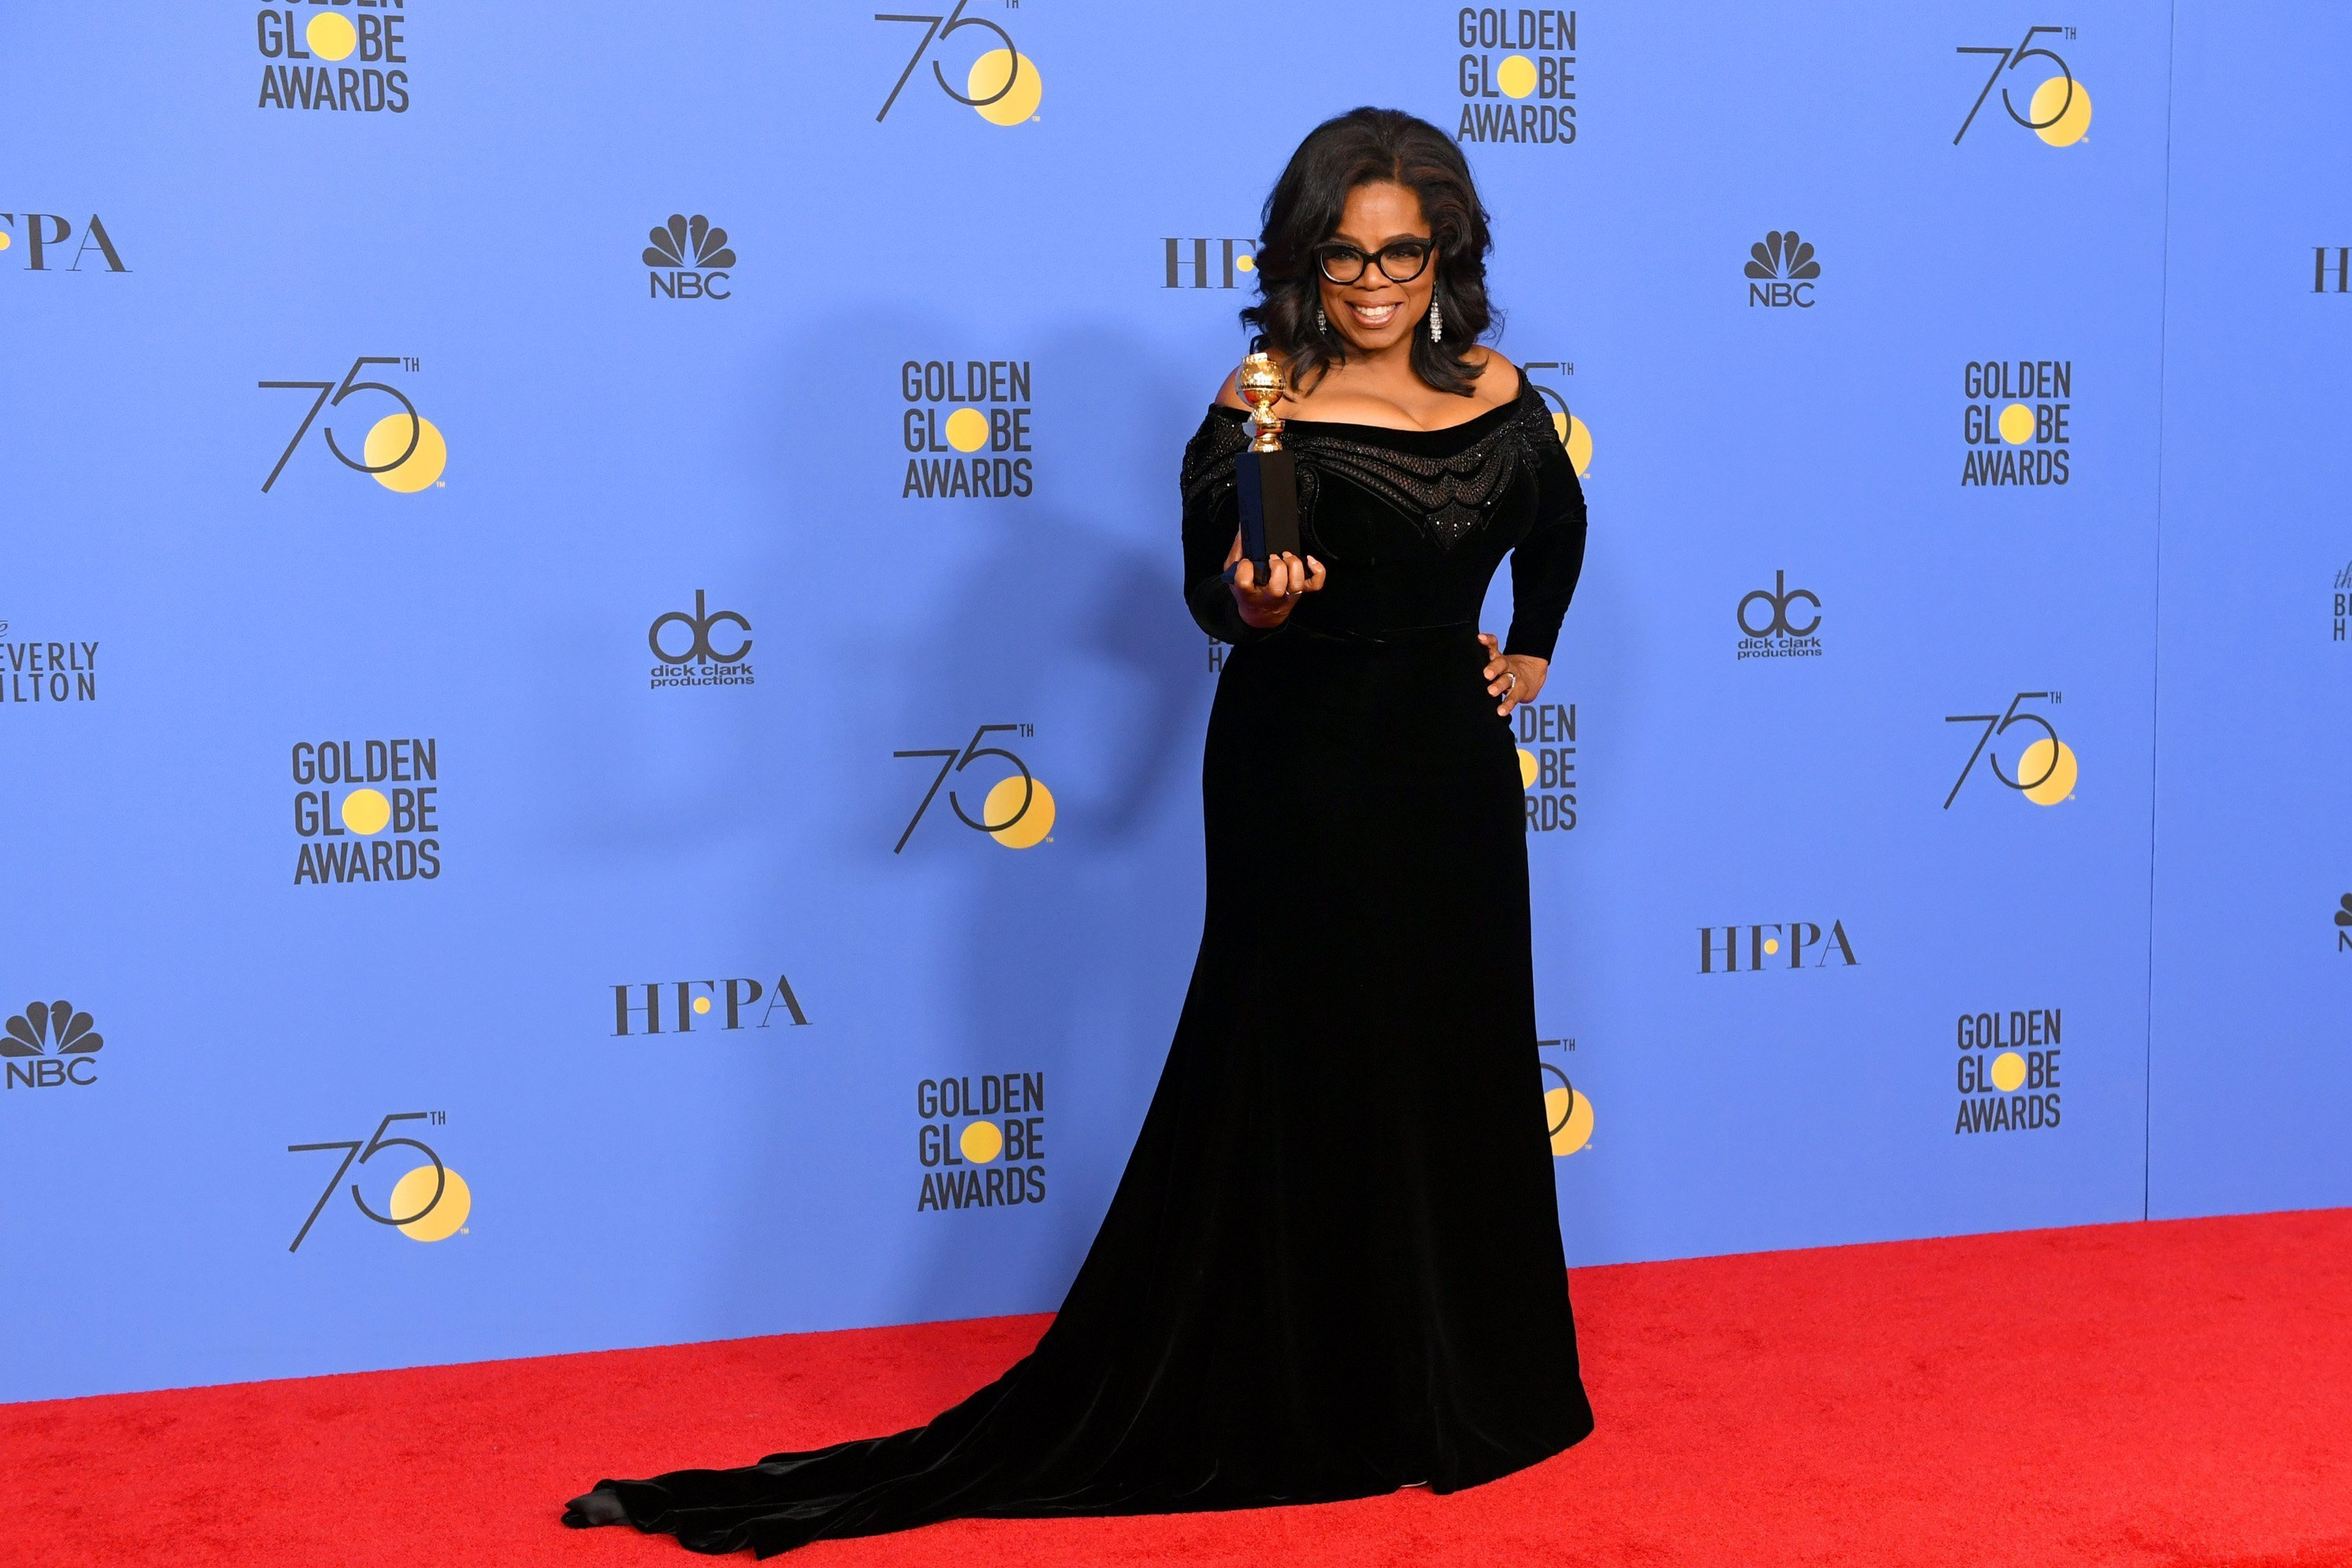 Oprah Winfrey poses with the Cecil B. DeMille Award in the press room during The 75th Annual Golden Globe Awards at The Beverly Hilton Hotel on January 7, 2018| Photo: Getty Images